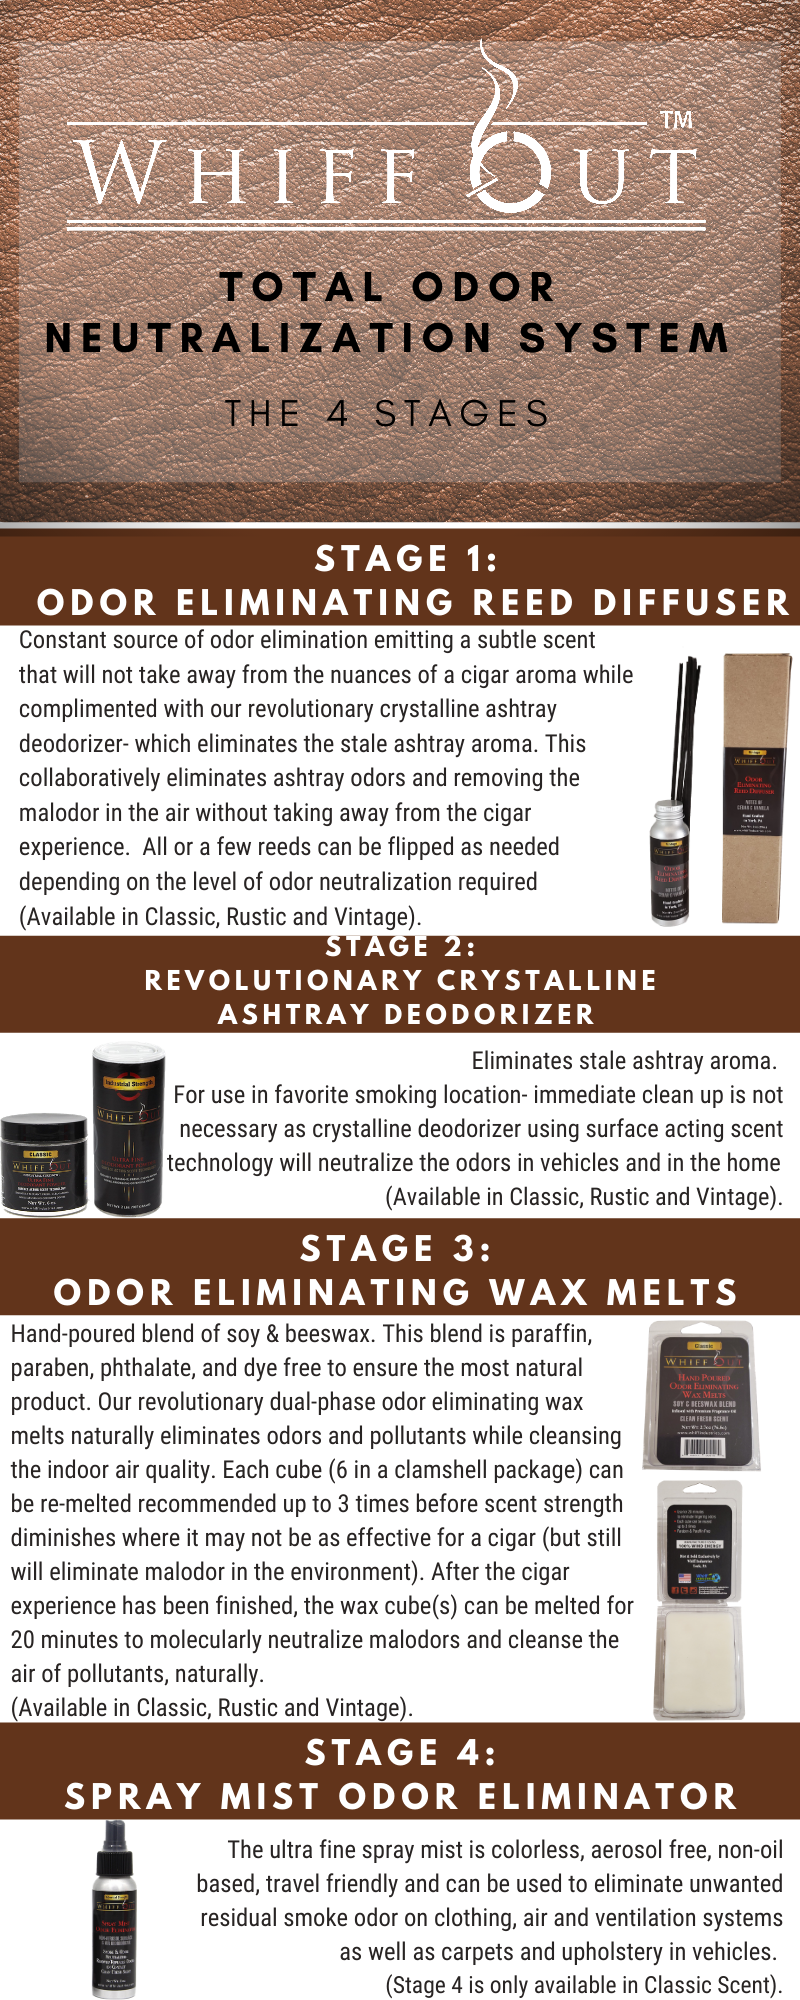 Whiff Out Total Odor Neutralization System